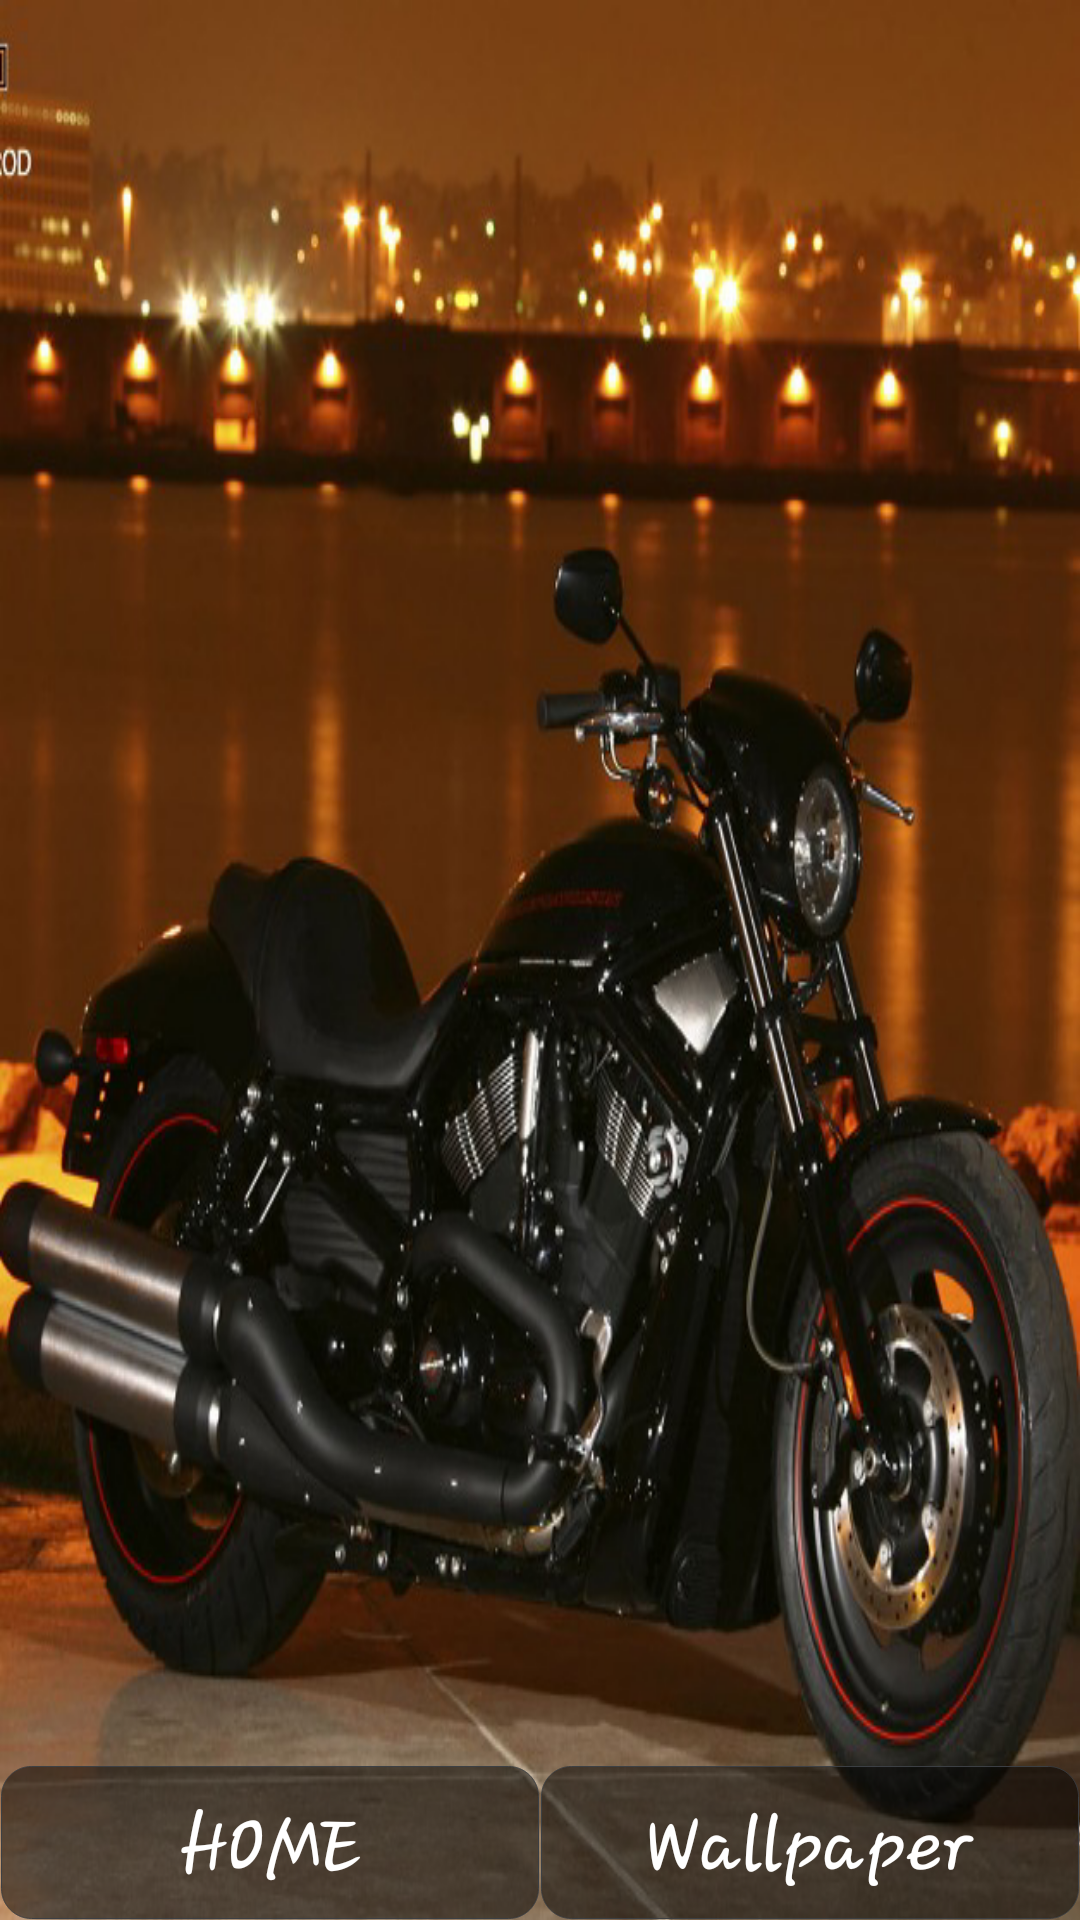 Harley davidson hd wallpapers appstore for android - Free harley davidson wallpaper for android ...